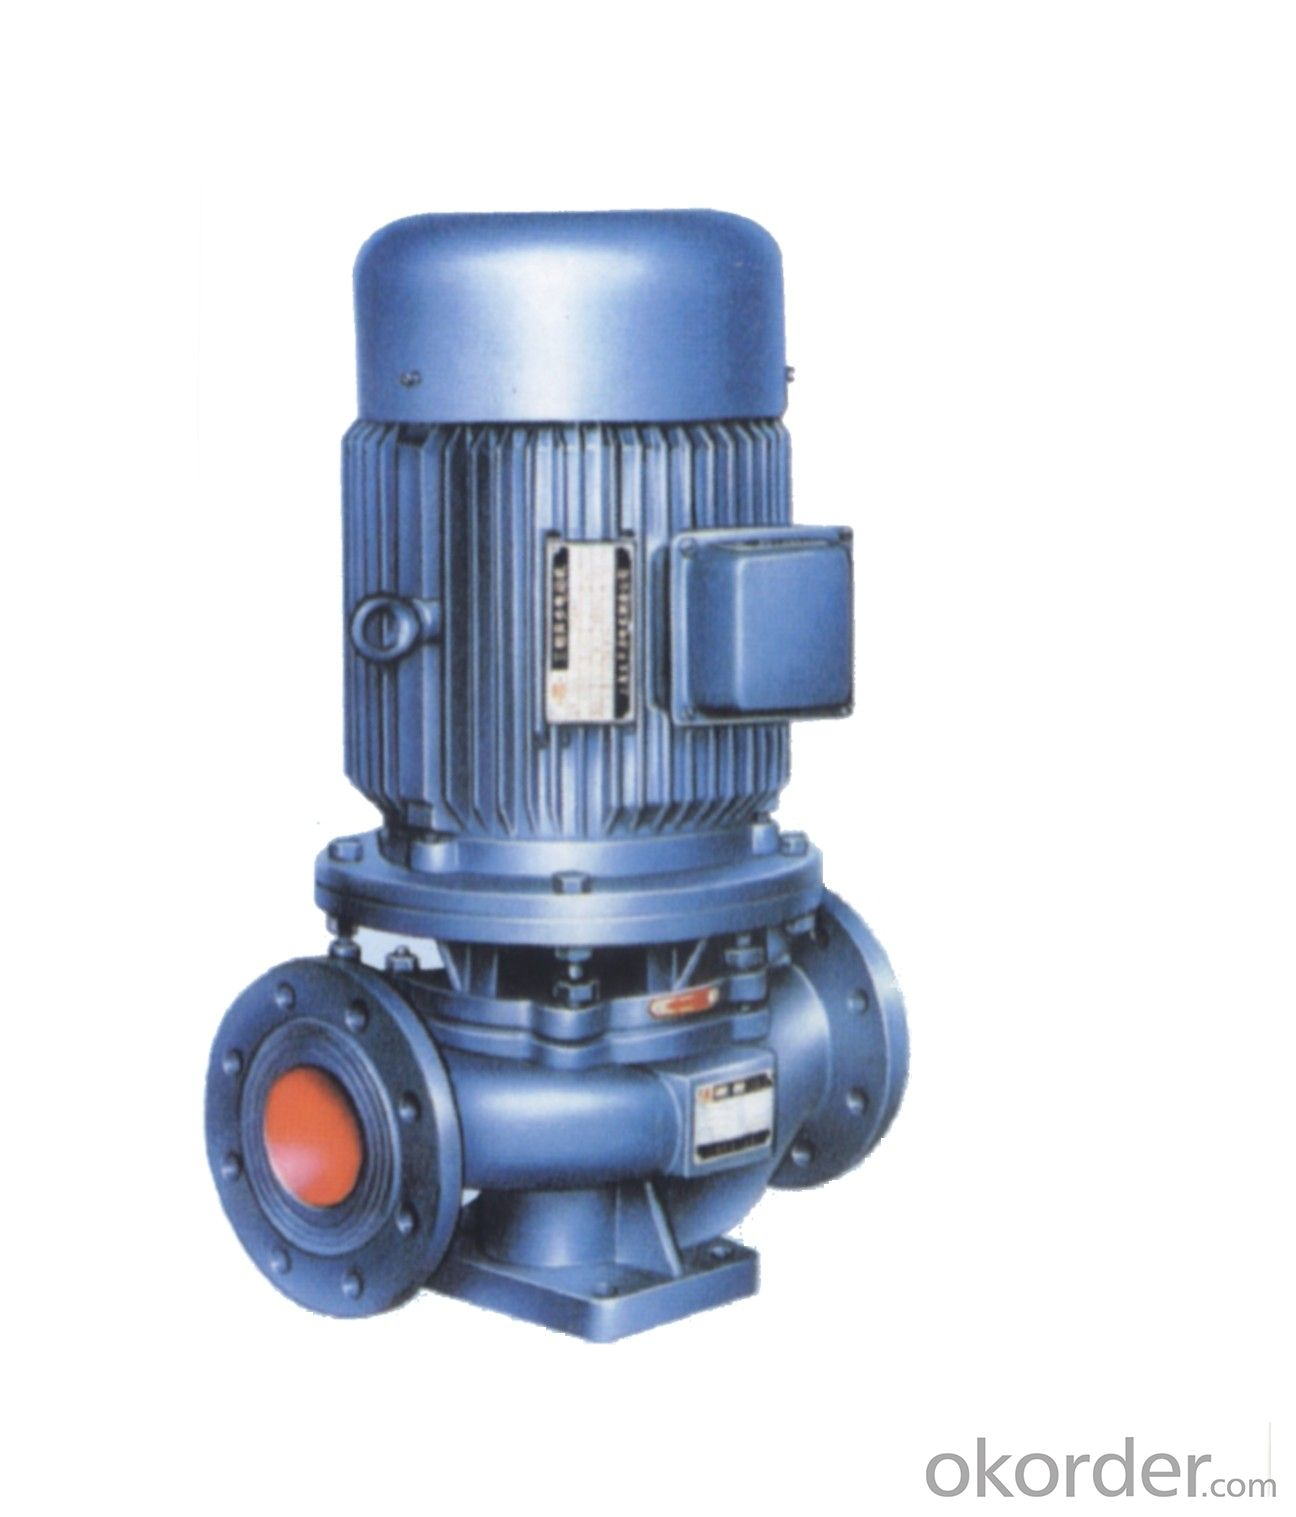 Centrifugal water pump from China